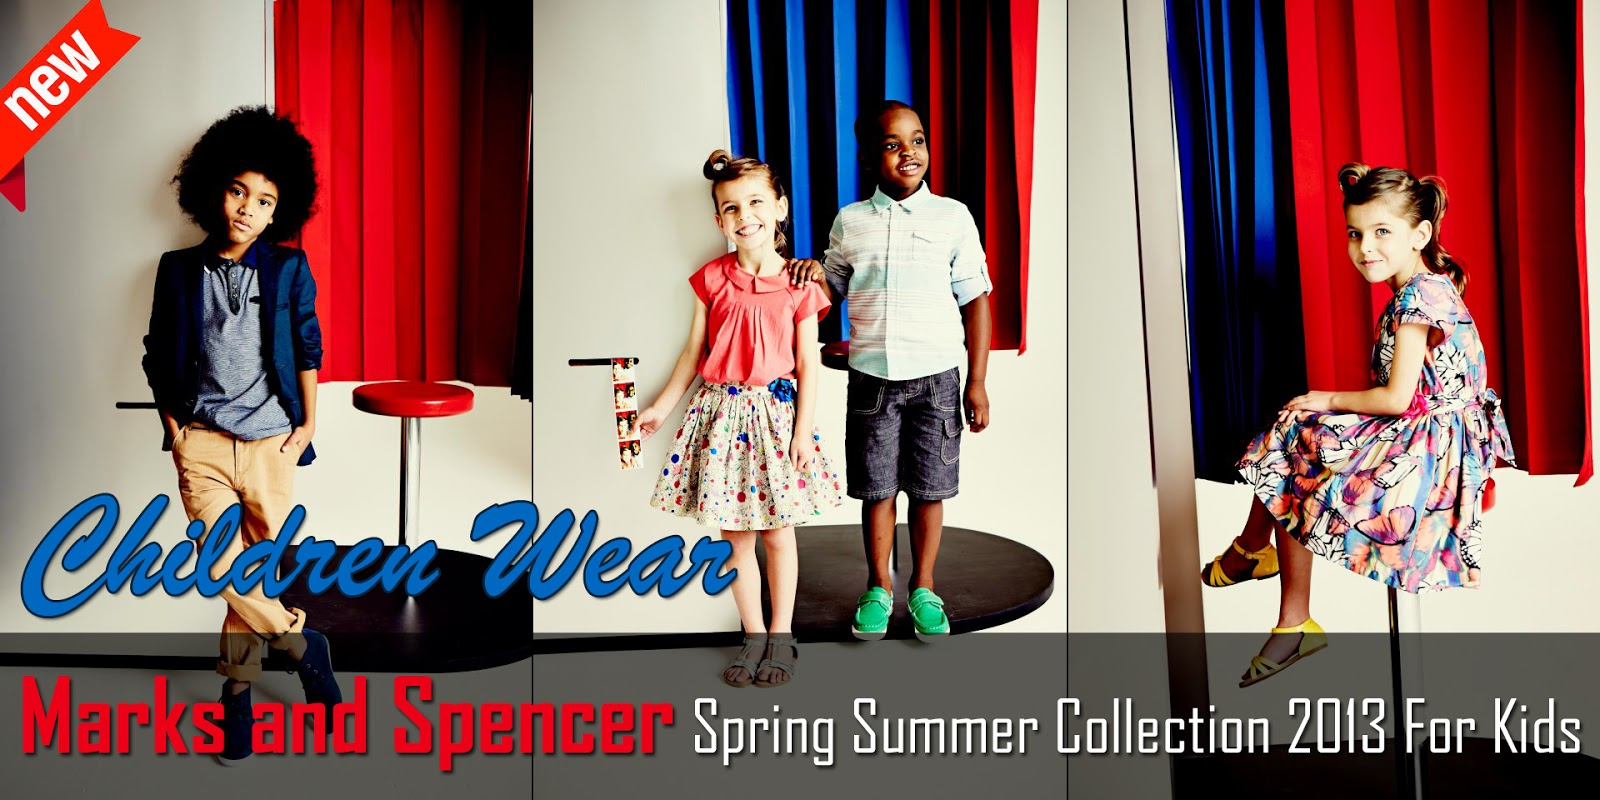 Marks And Spencer Spring Summer Collection 2013 For Kids